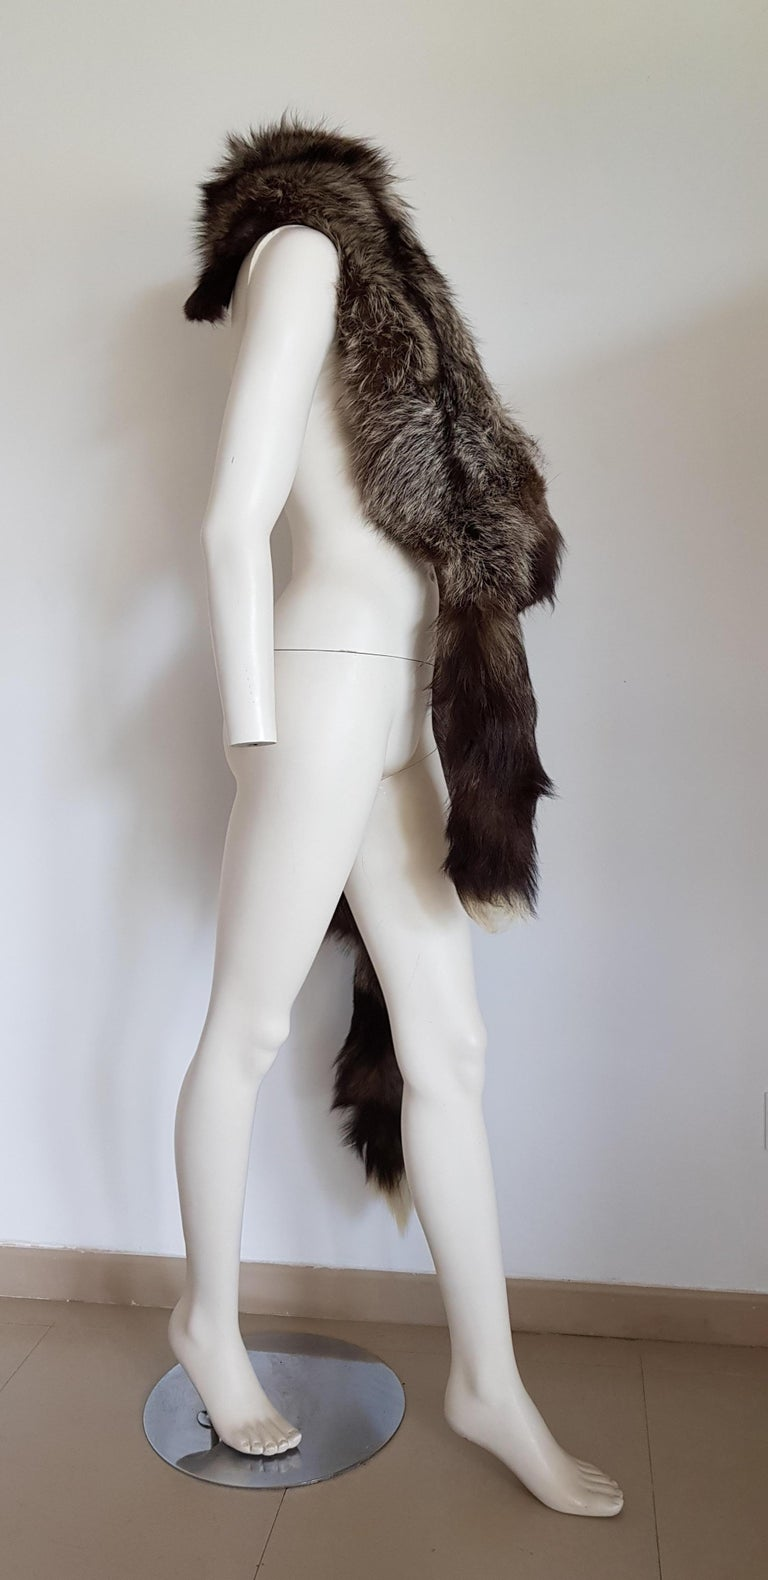 HAUTE COUTURE Two Silver Wild Fox Vintage STOLE with Swarovski. Good condition. Fur kept professionally. SIZE: Two foxes. Each fox: length 130 cm, width 20 cm. TO CONVERT: cm x 0.39 = inch.